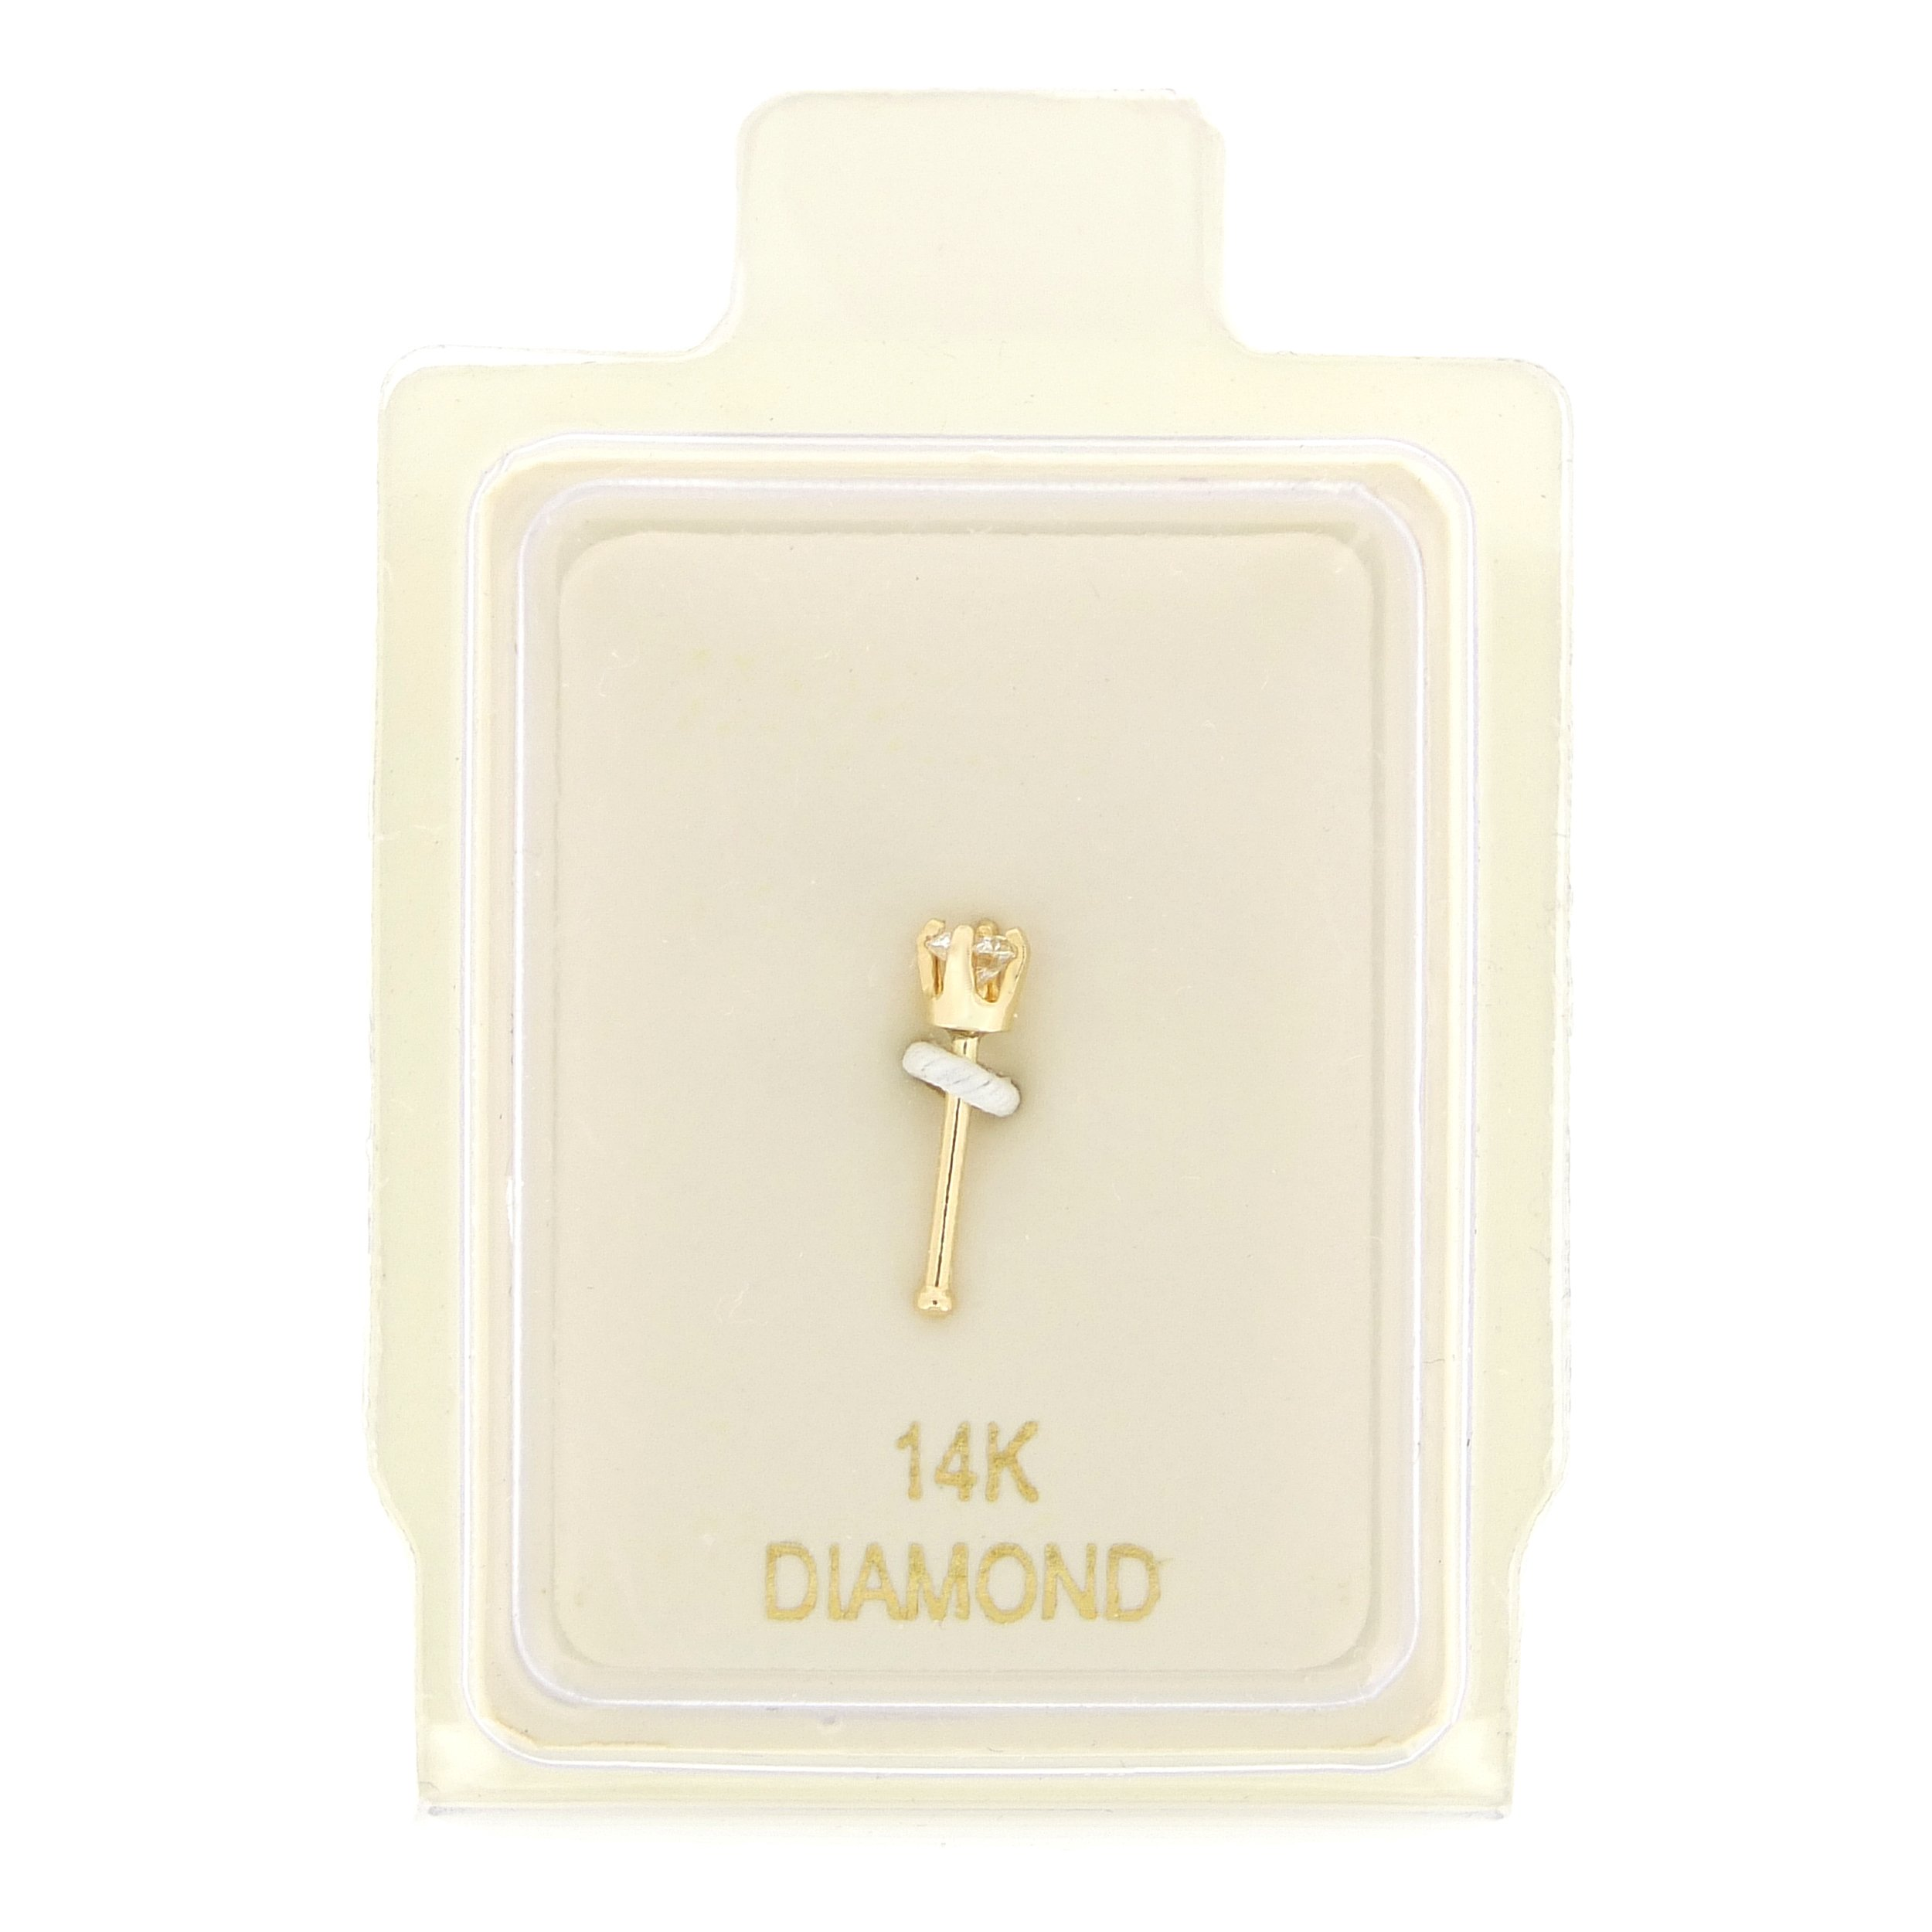 14K Yellow Gold 1.7mm .02 cttw Diamond Nose Ring Straight Stud 22G